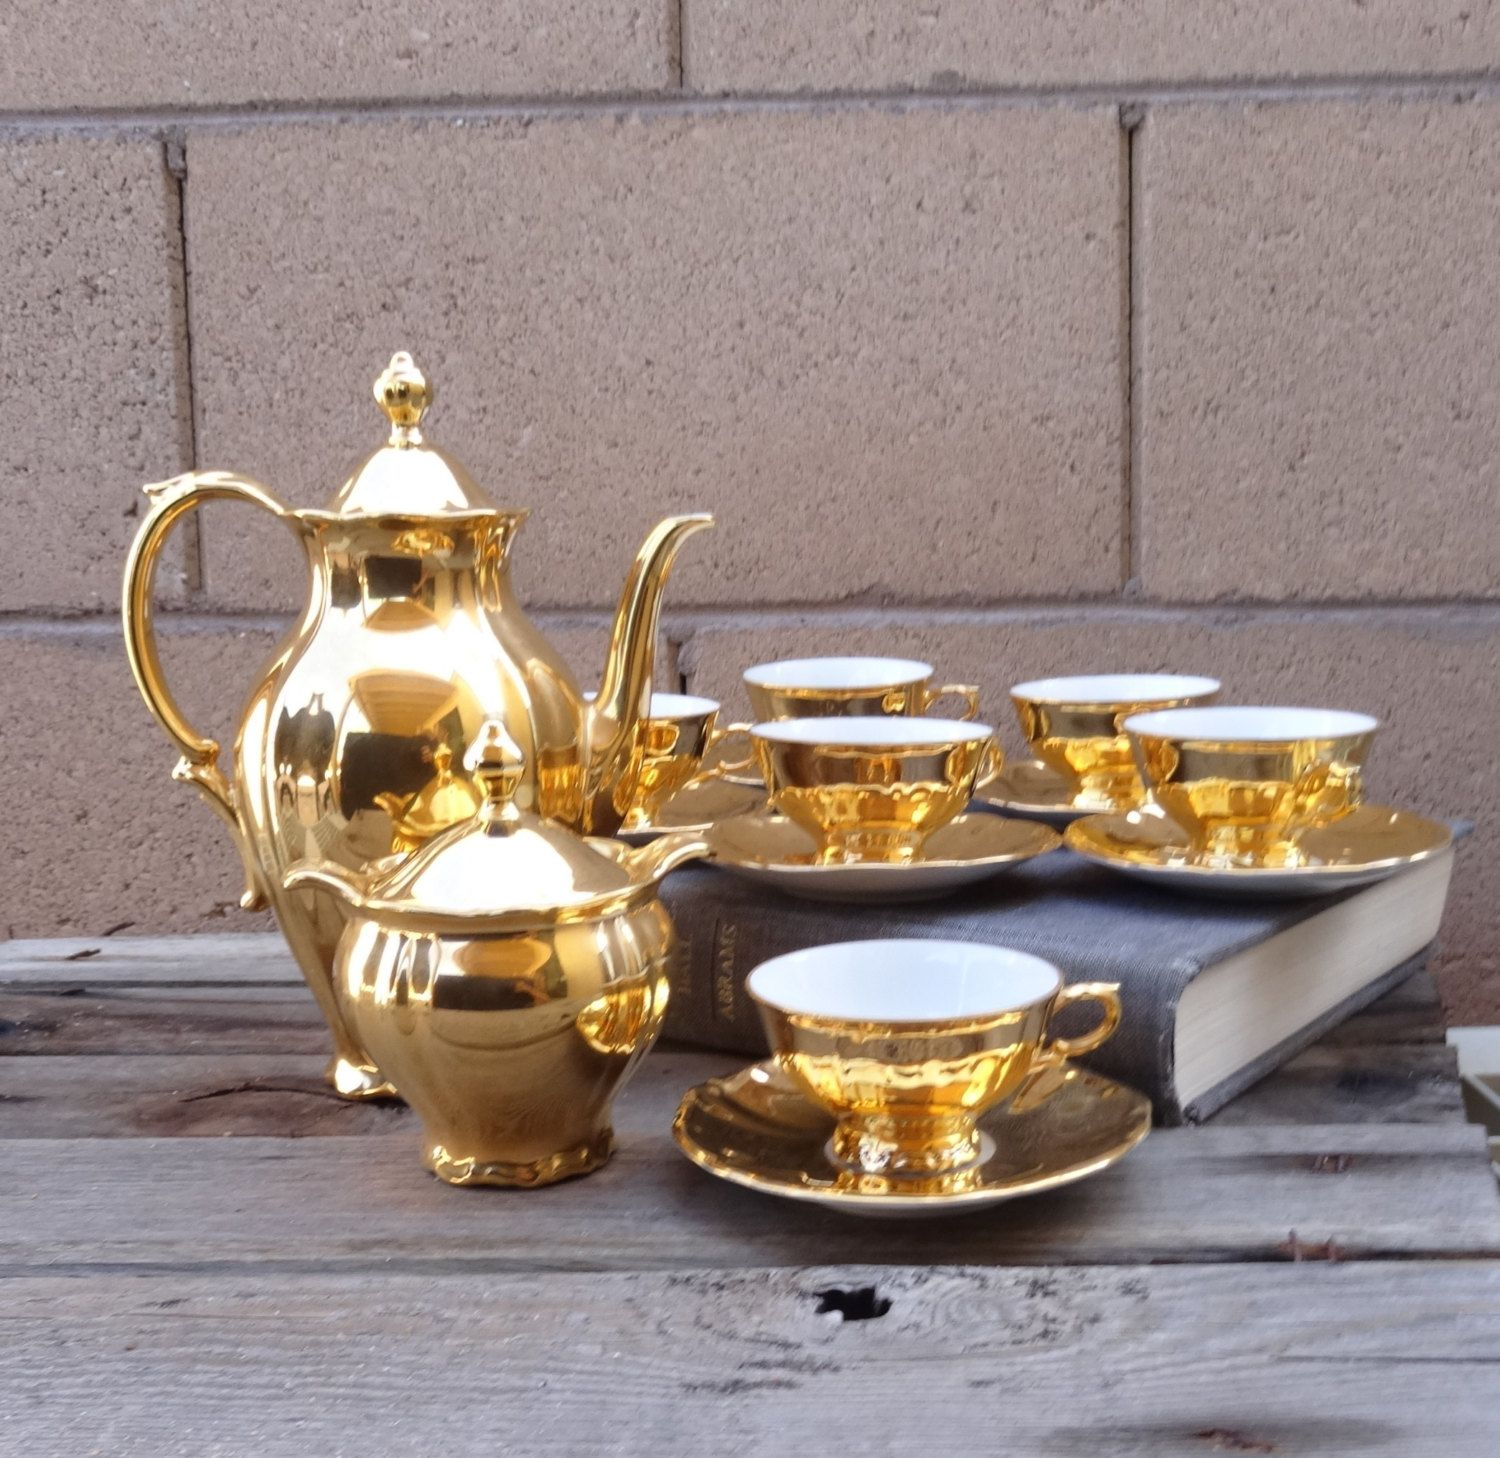 Vintage Bareuther Waldsen Bavaria Gold Porcelain Tea Set Service For Demite Coffee By Tiesofmyfather On Etsy